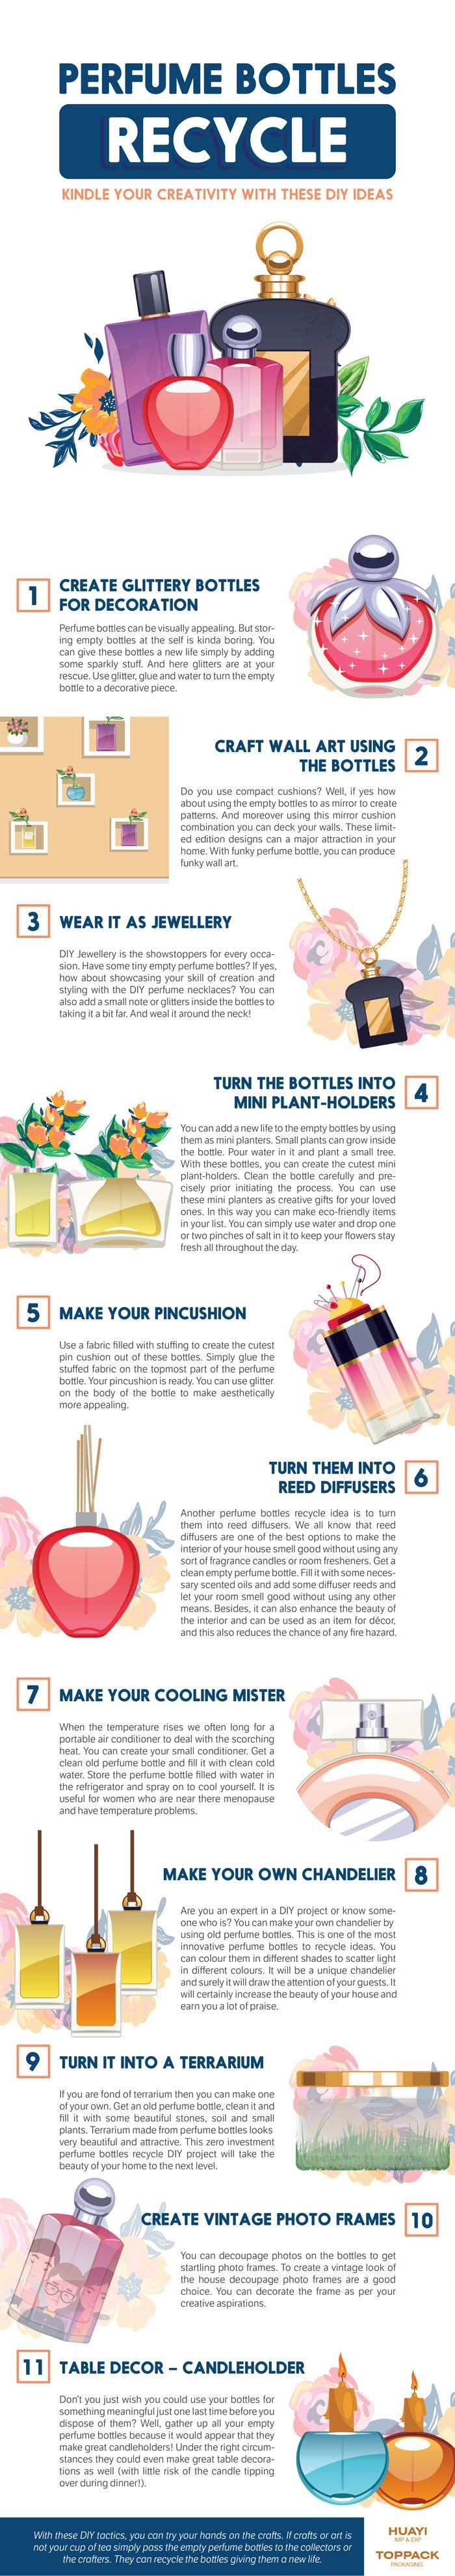 Perfume Bottles Recycle: The Ultimate Guide #infographic